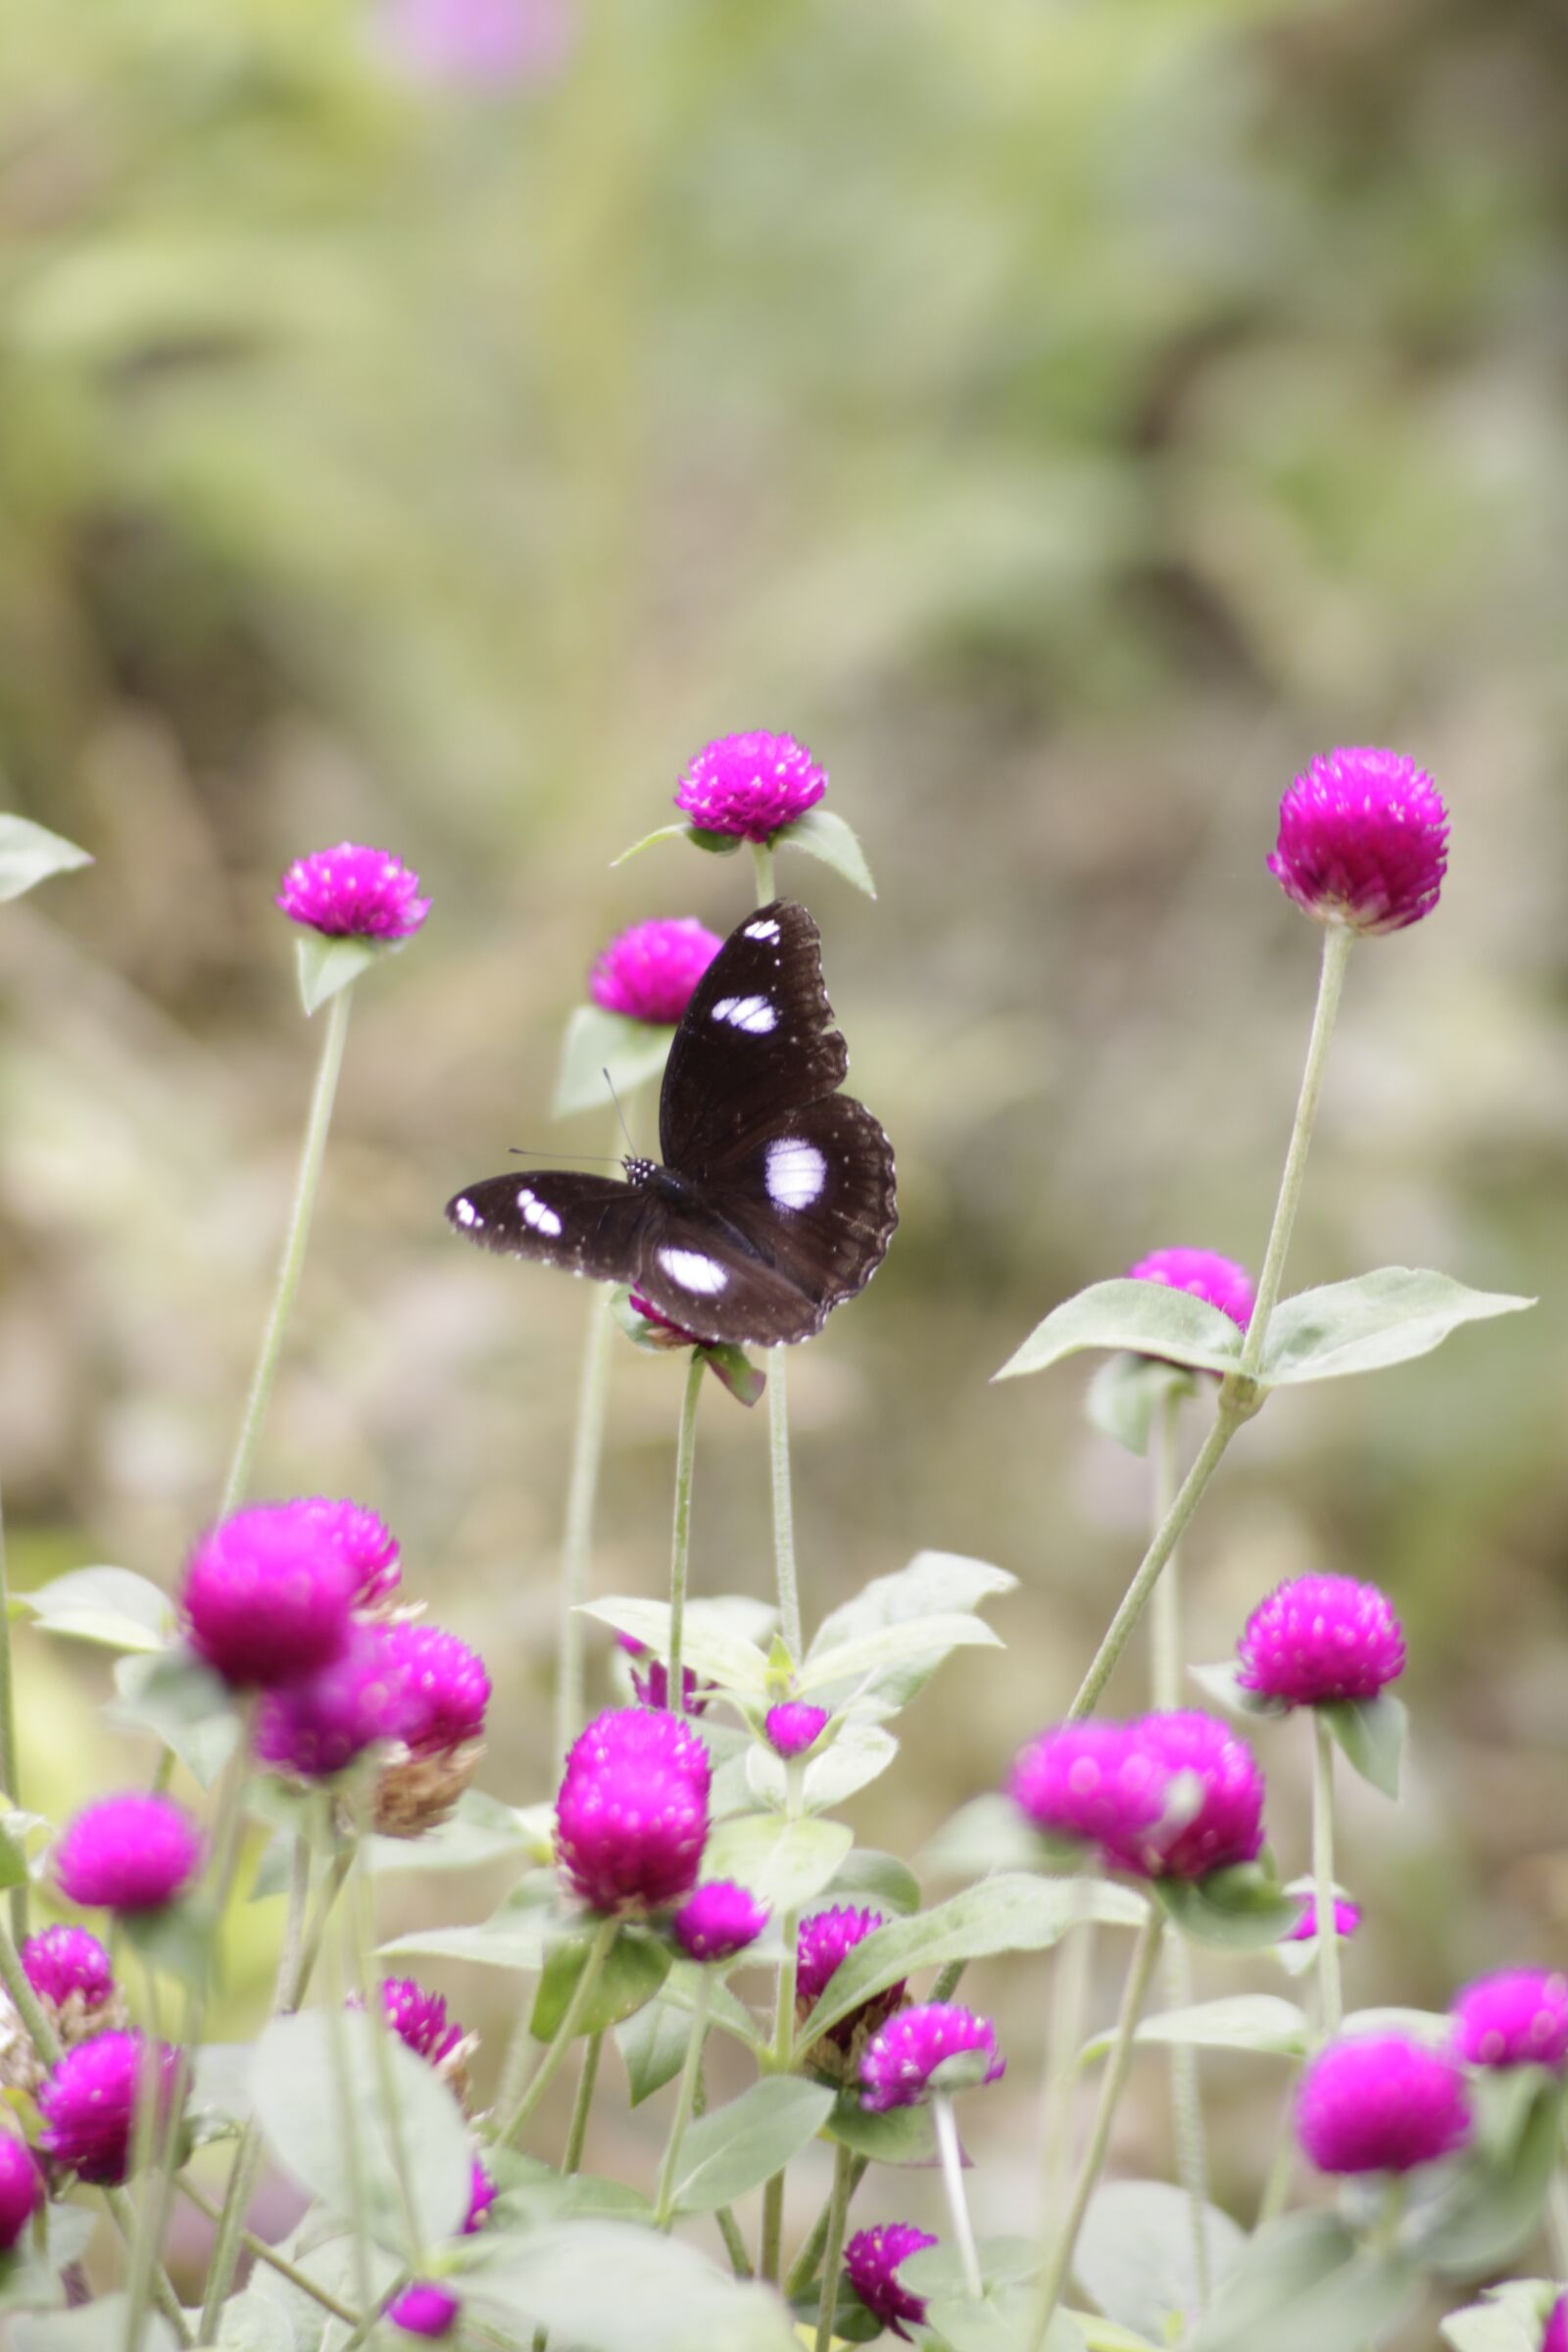 """Canon EOS 50D sample photo. """"Butterfly, flower, insect"""" photography"""